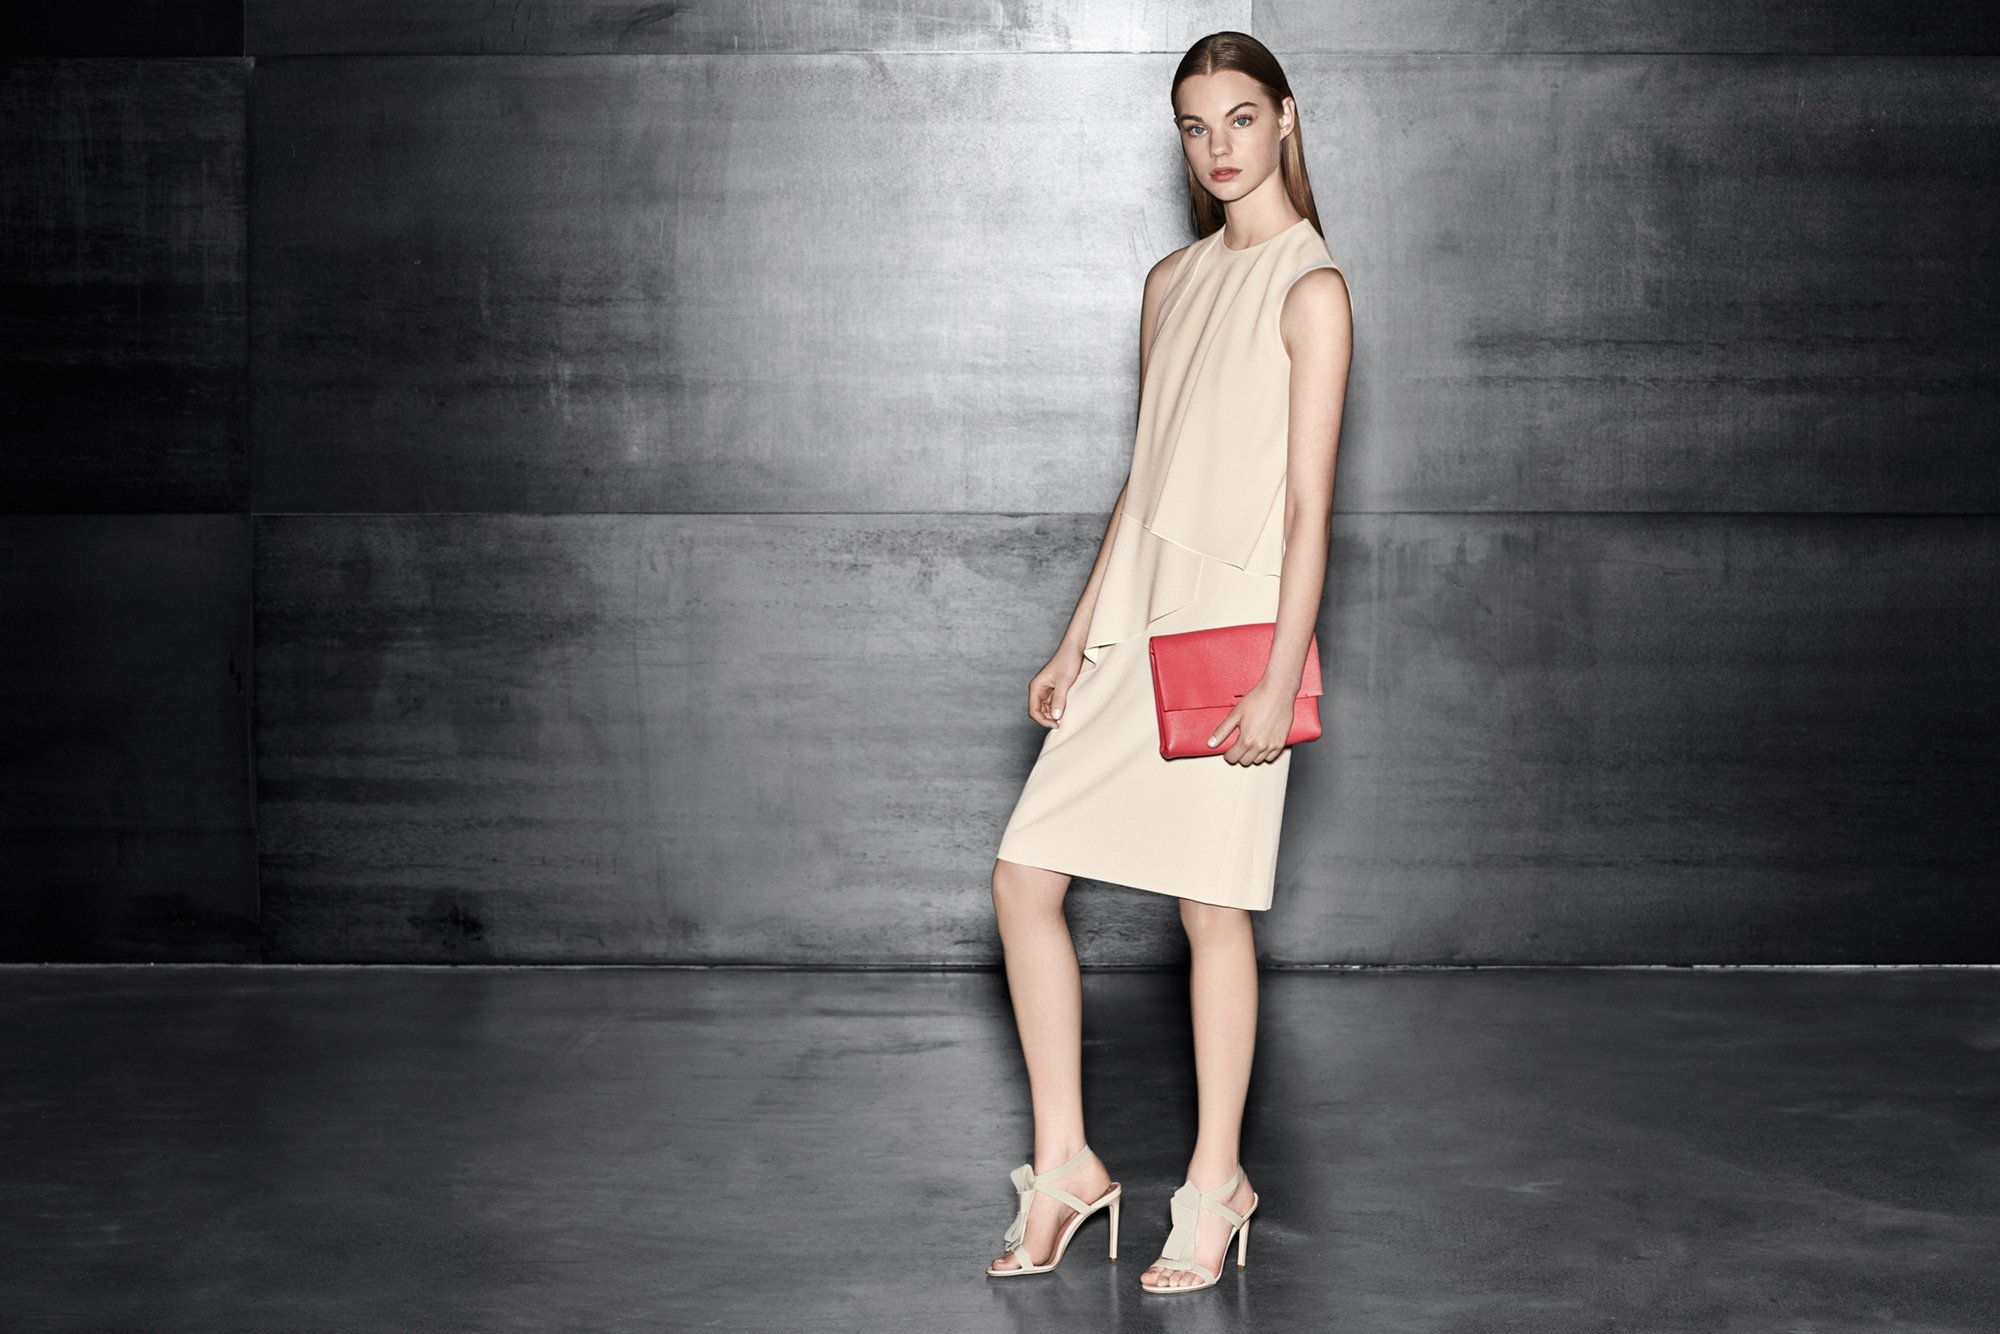 Dress, shoes and bag by BOSS Womenswear